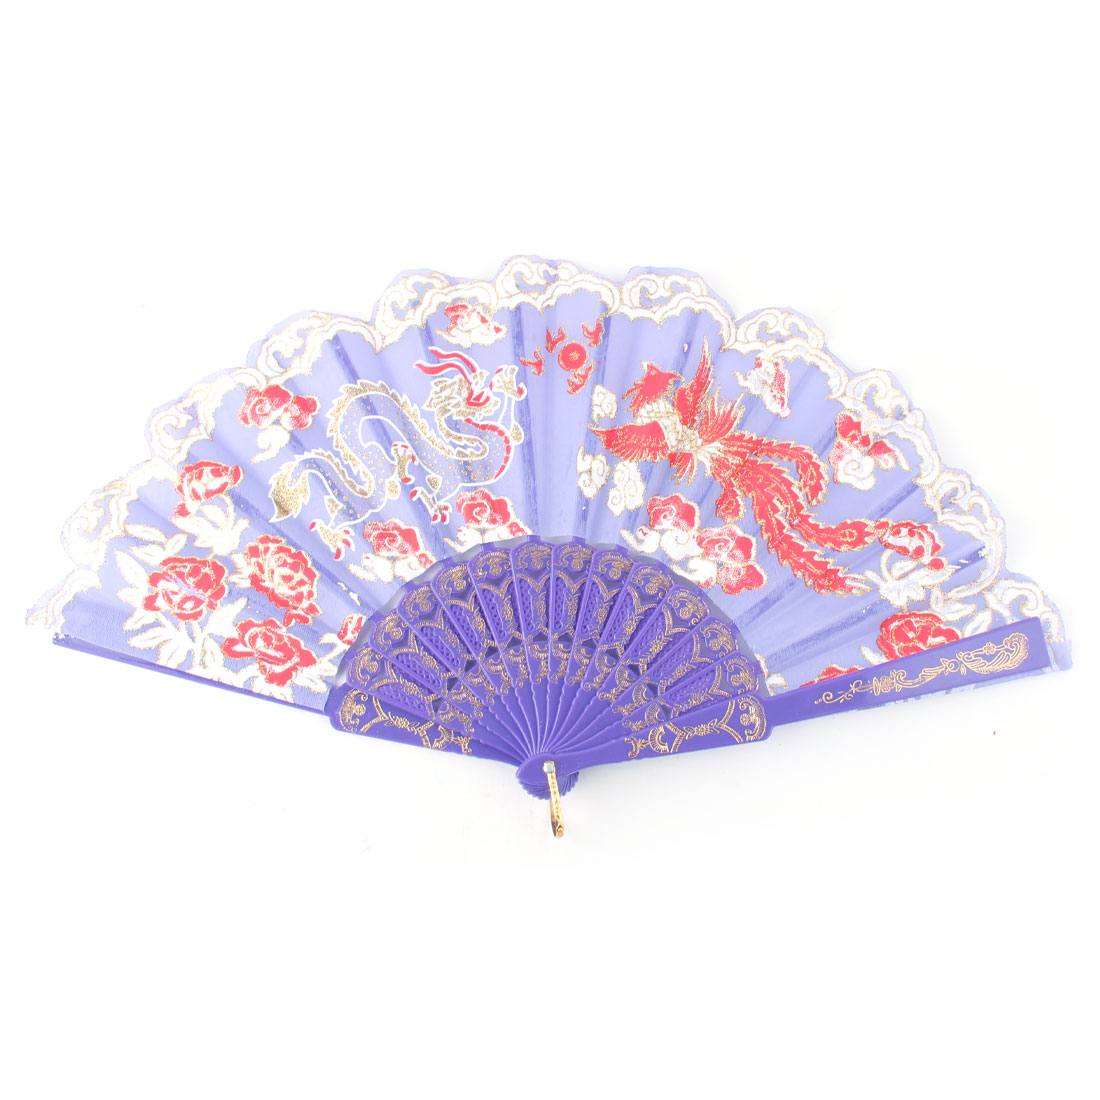 Dancing Dragon Phoenix Pattern Folding Chinese Folk Dance Handheld Fan Purple